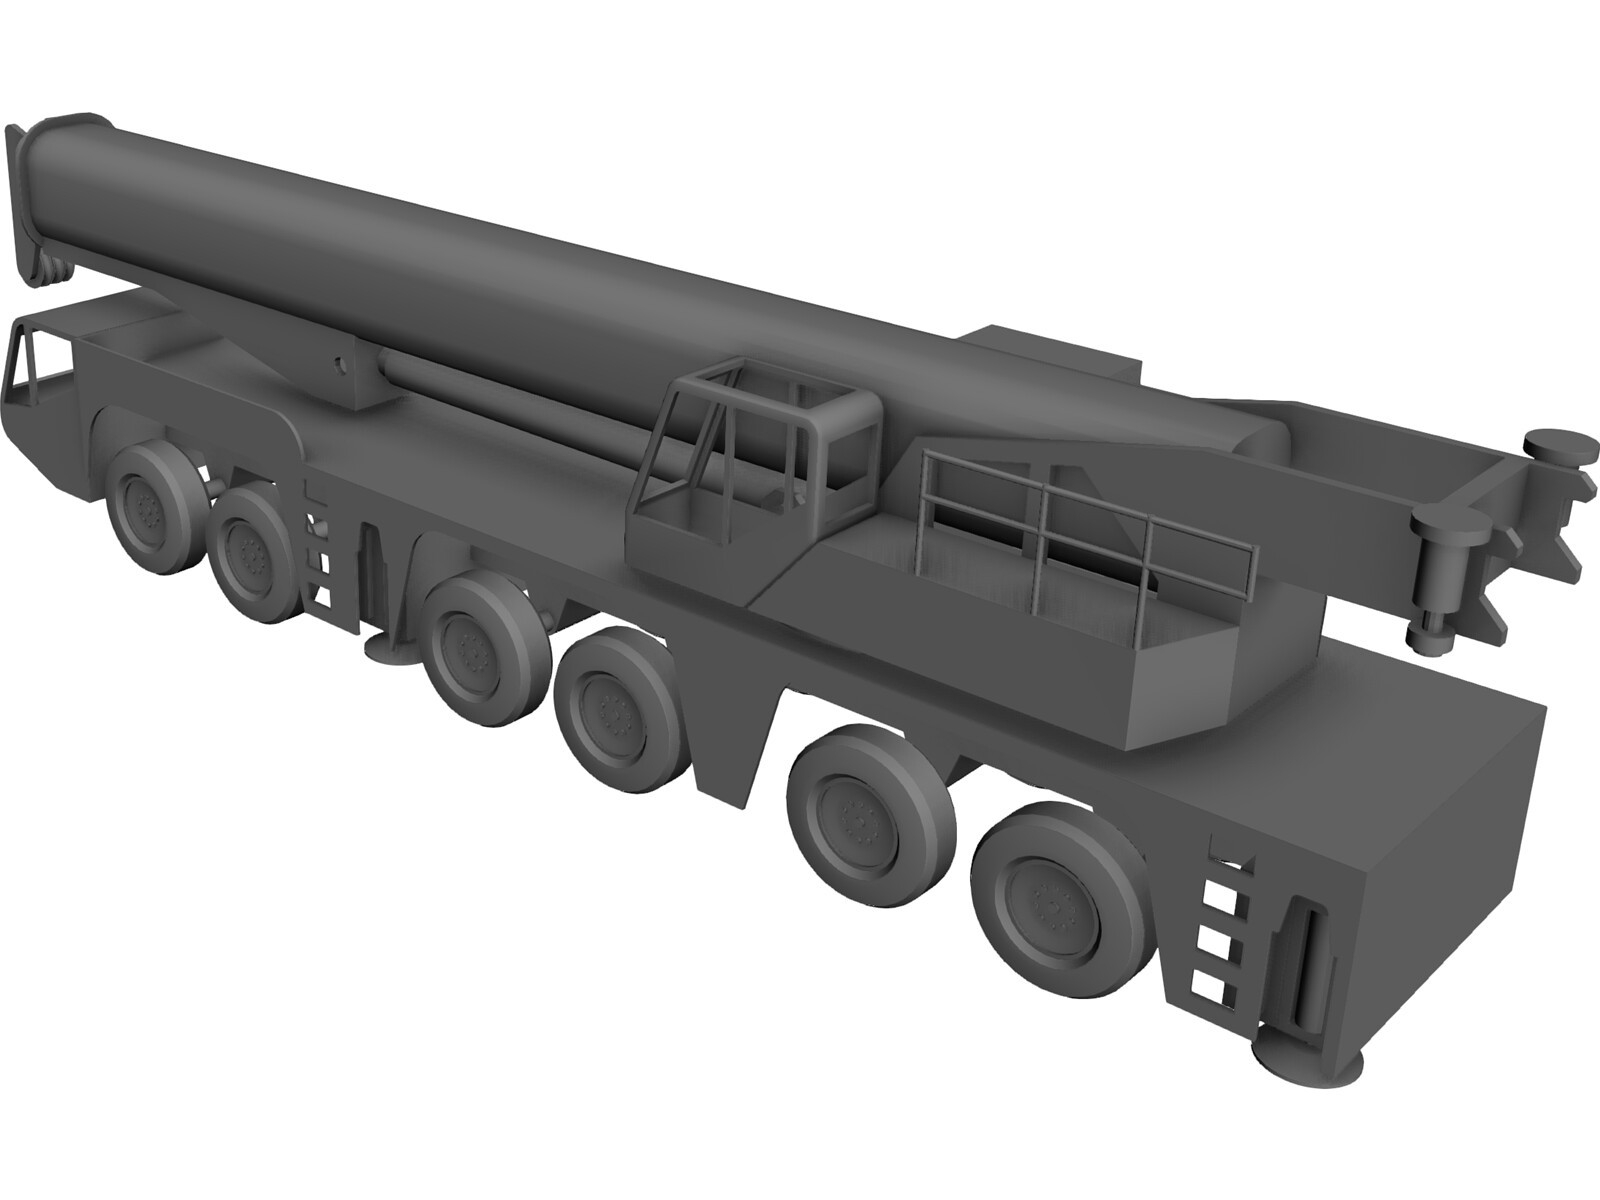 AC250 All Terrain Crane 3D CAD Model